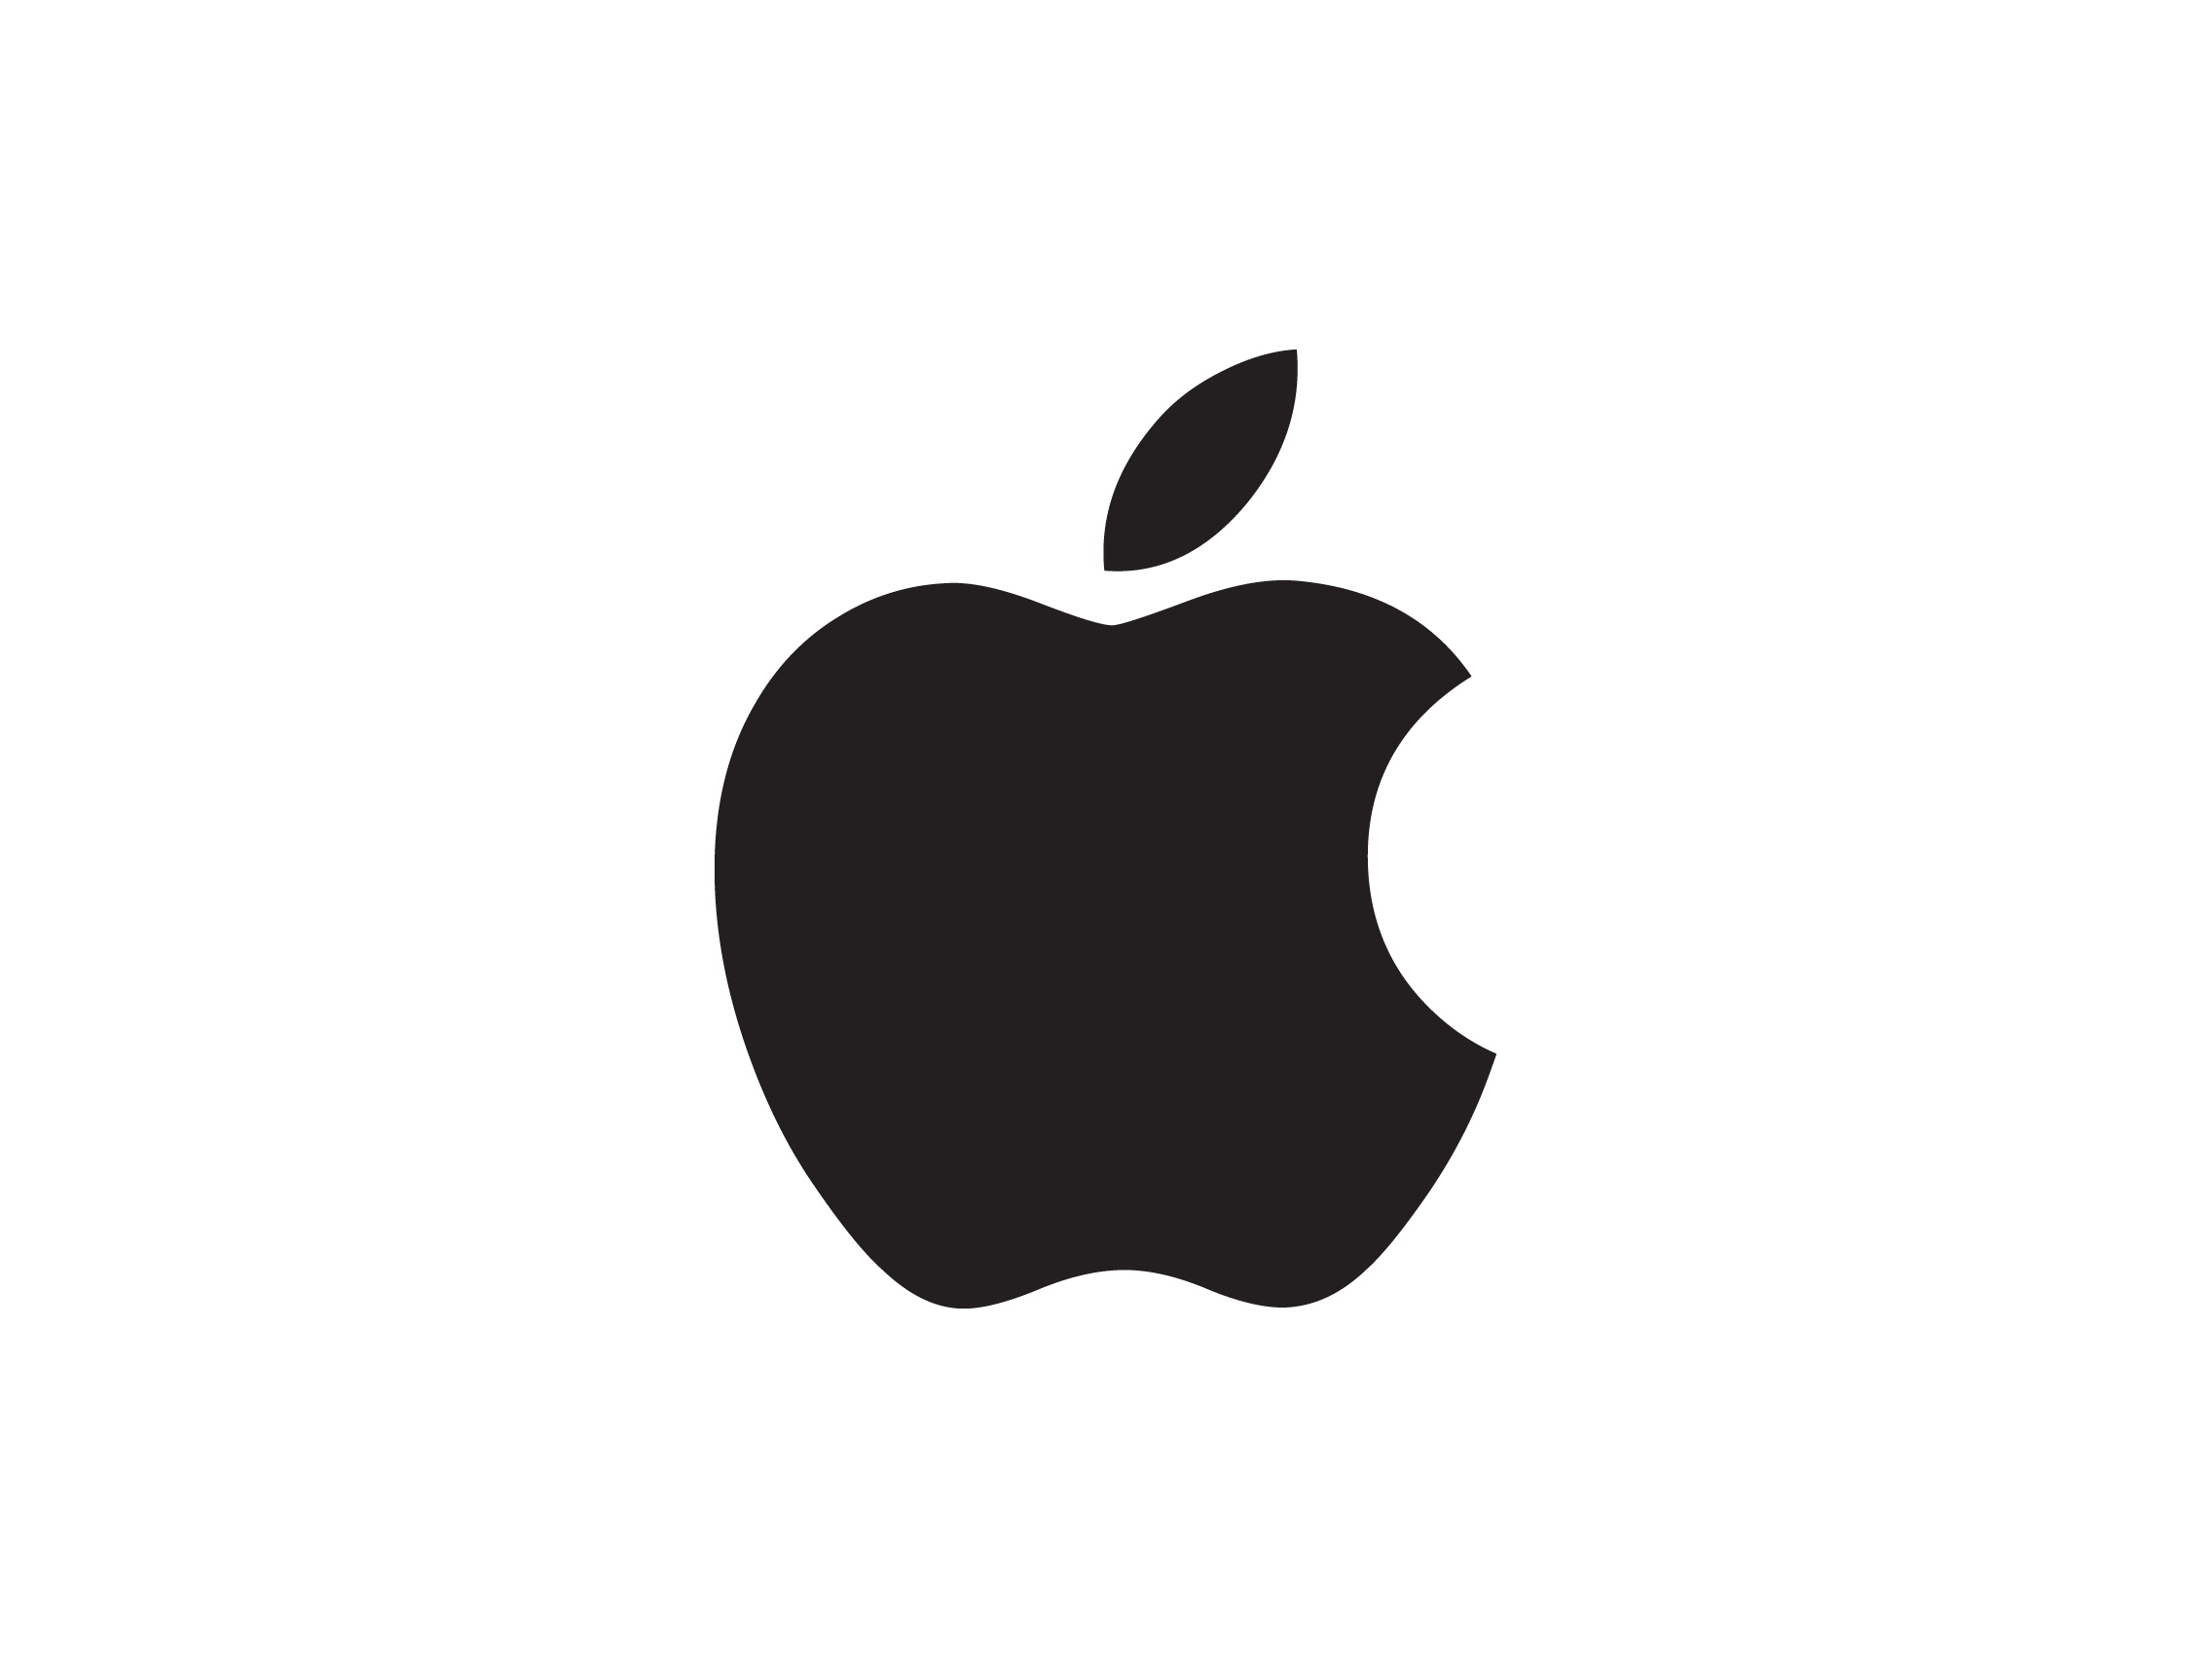 Apple-Logo-black